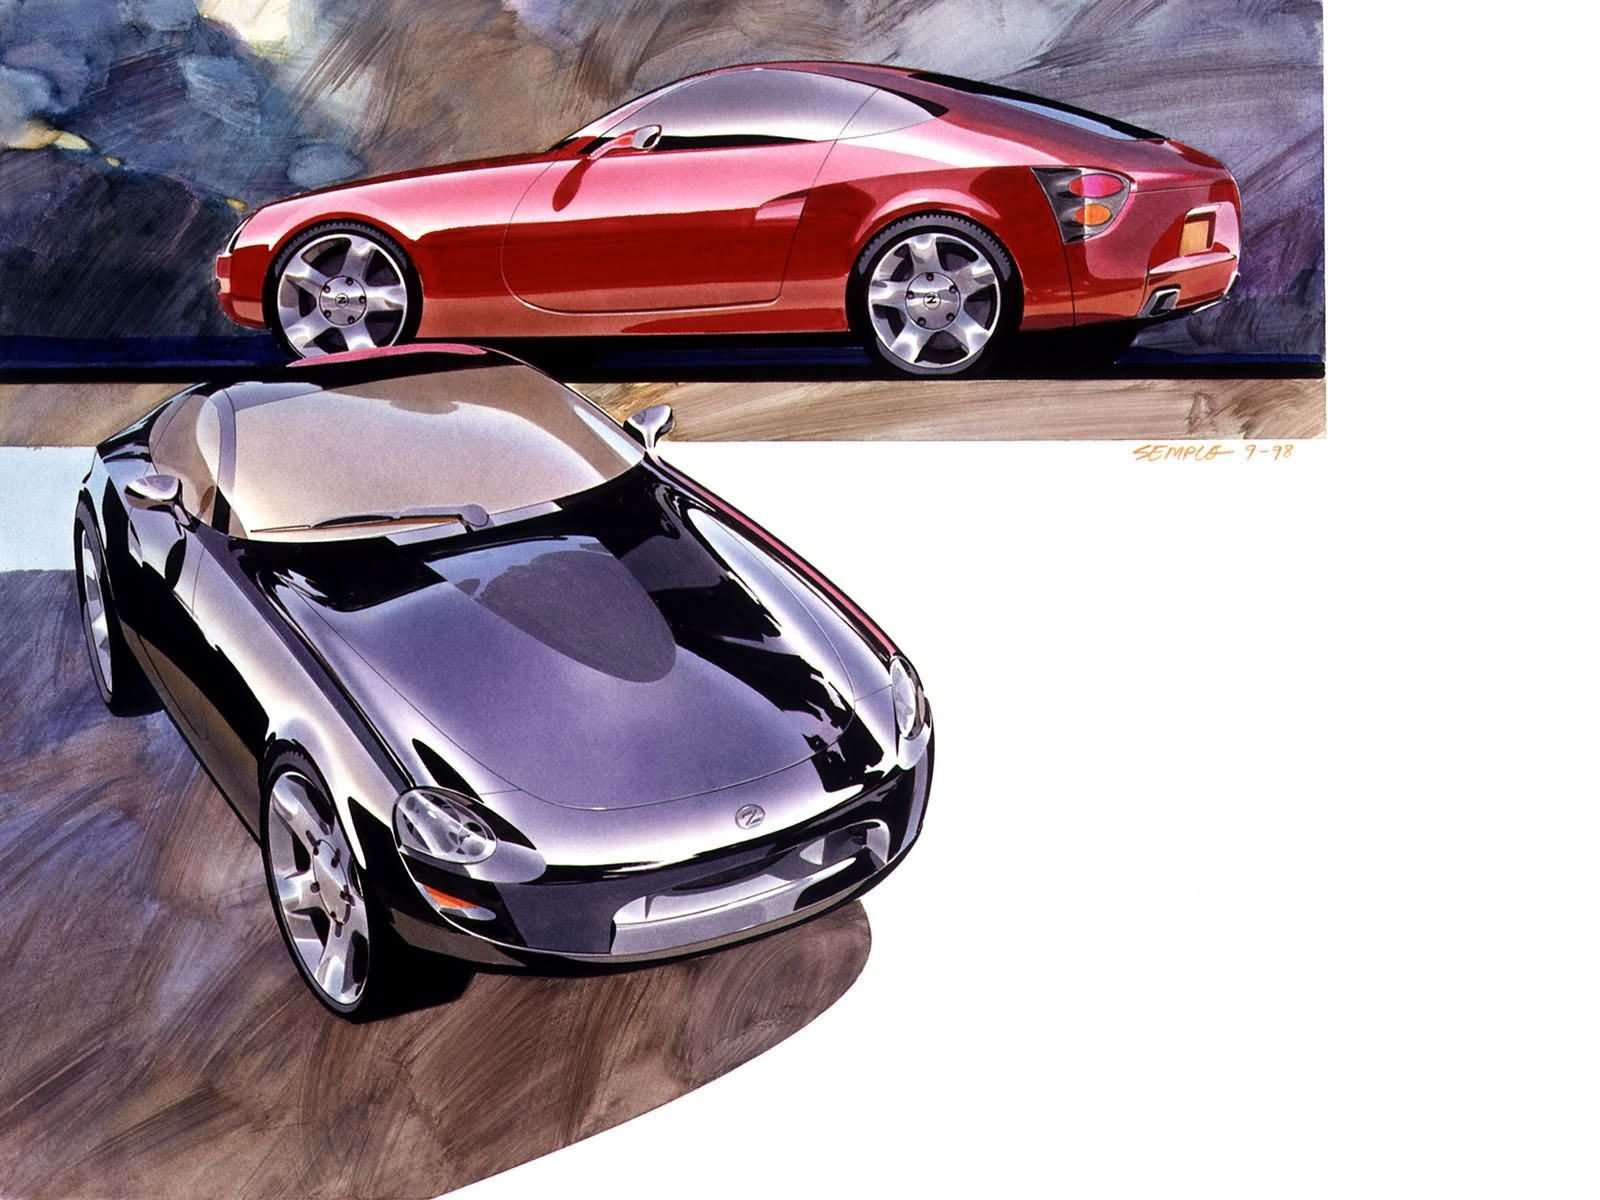 2009 Nissan 400Z Review - Top Speed